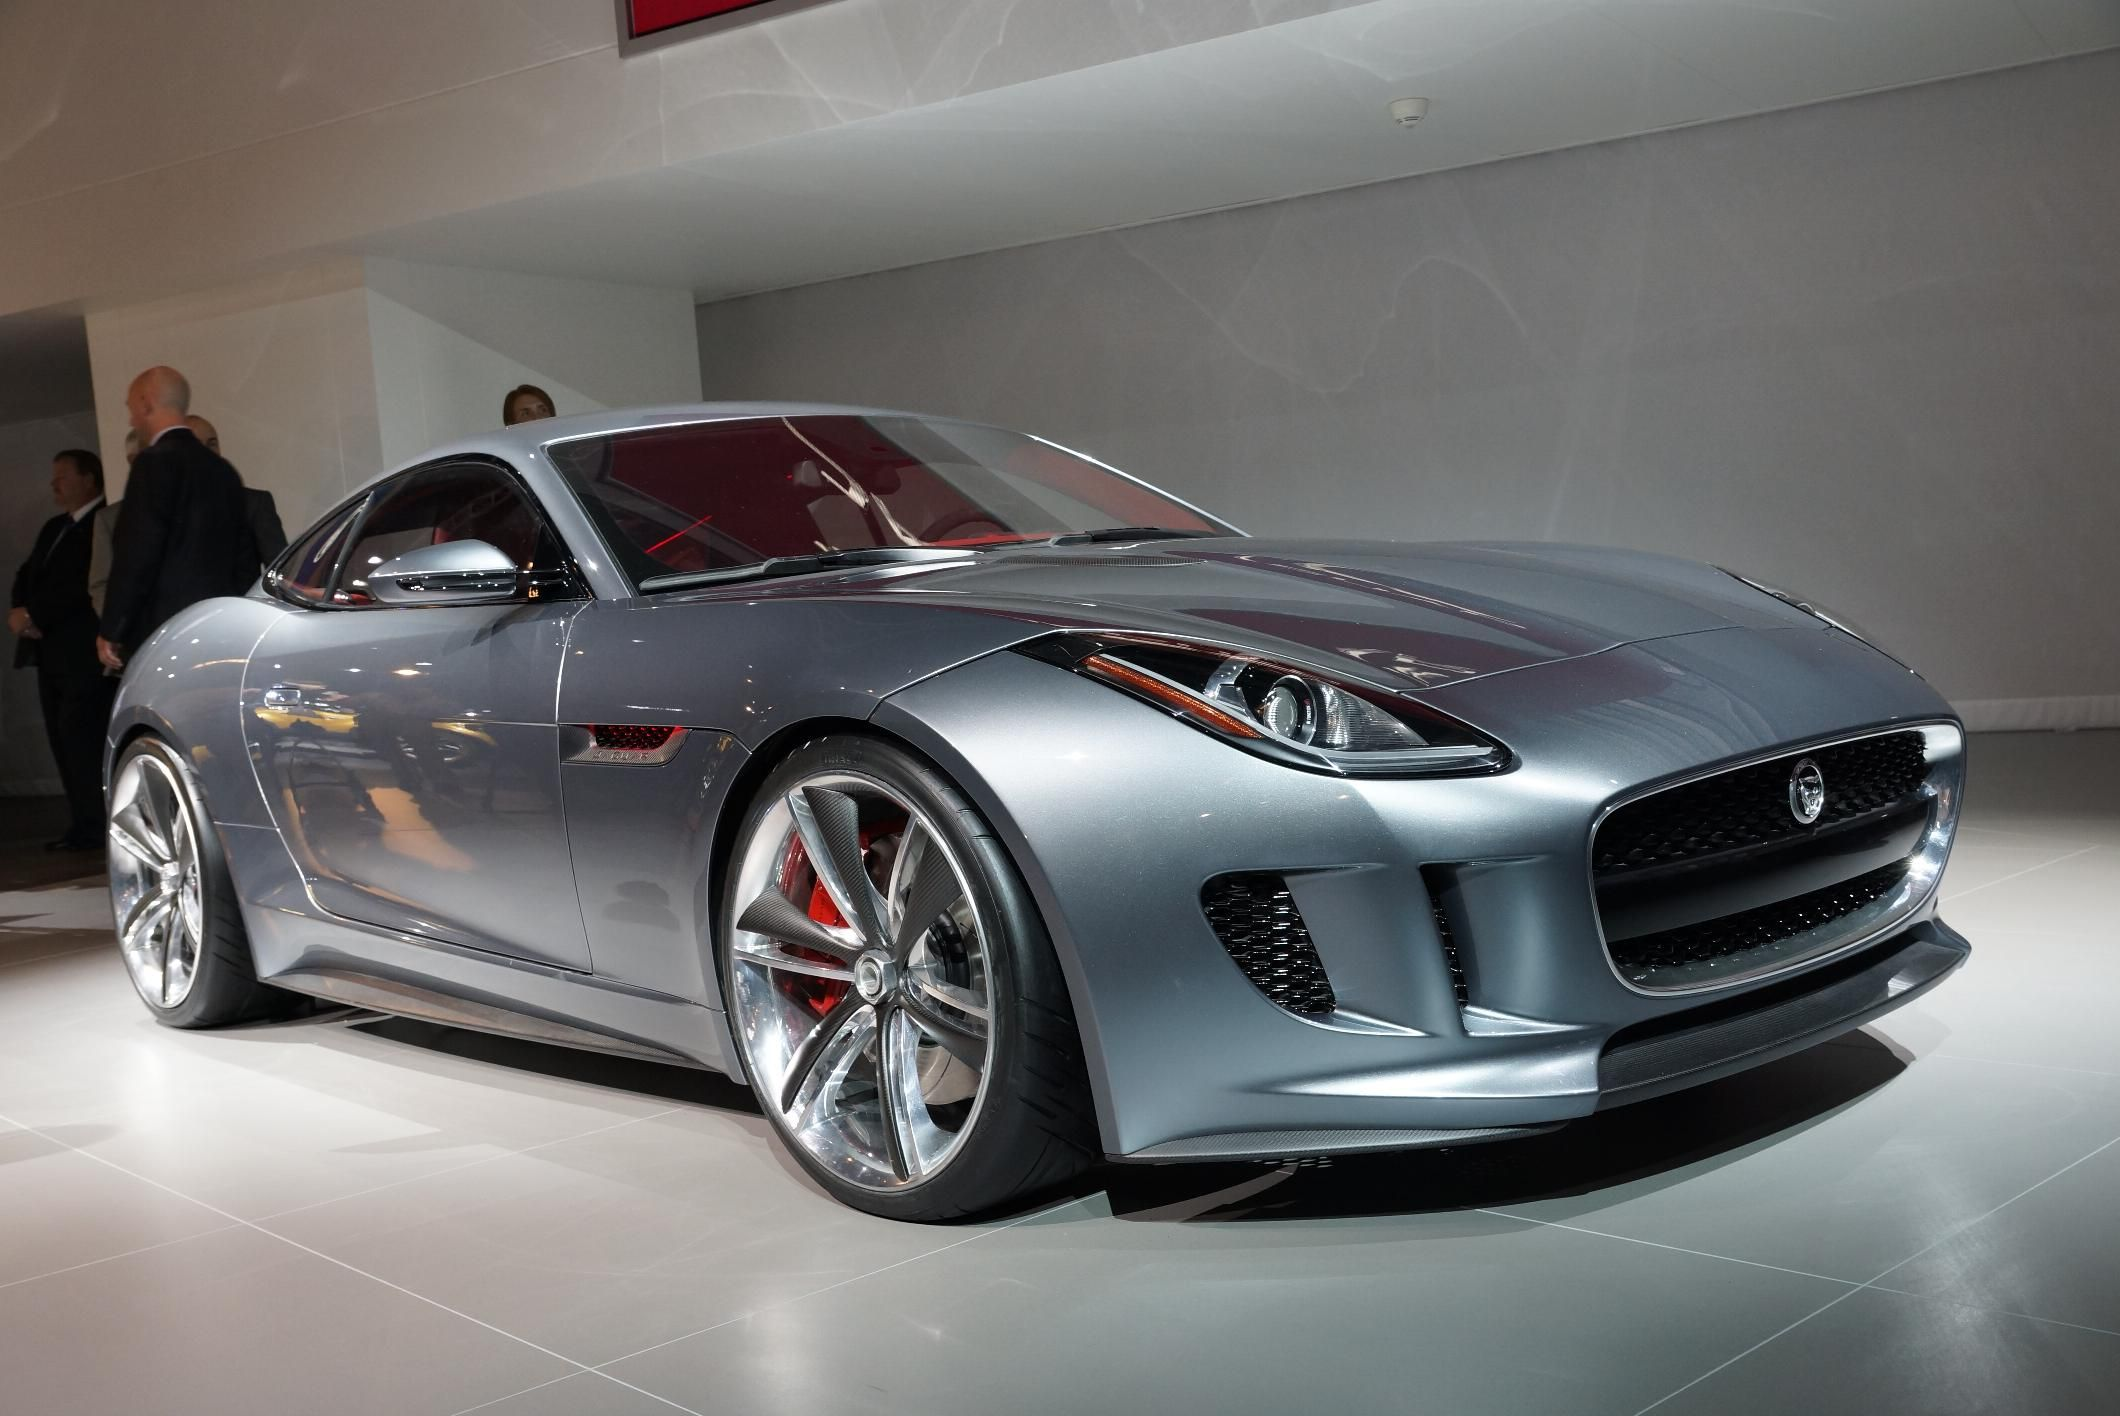 Jaguar F Type | News : Jaguaru0027s New Sports Car Is The F TYPE   AROnline